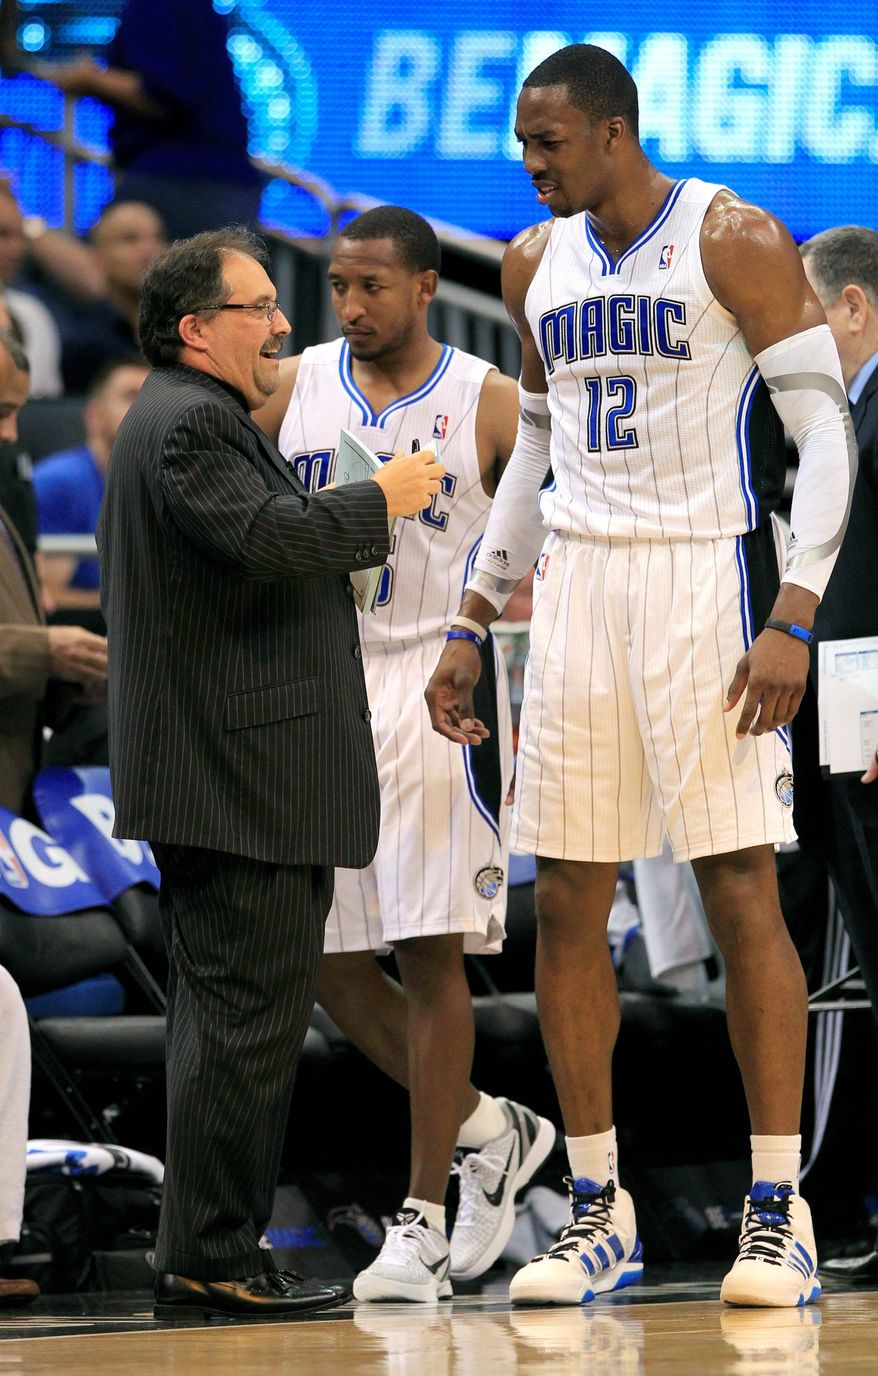 Orlando coach Stan Van Gundy and Dwight Howard have had less than a cordial relationship. Even though Howard re-signed with the Magic for next season, reports emerged that Howard asked team officials to fire Van Gundy.(Associated Press)